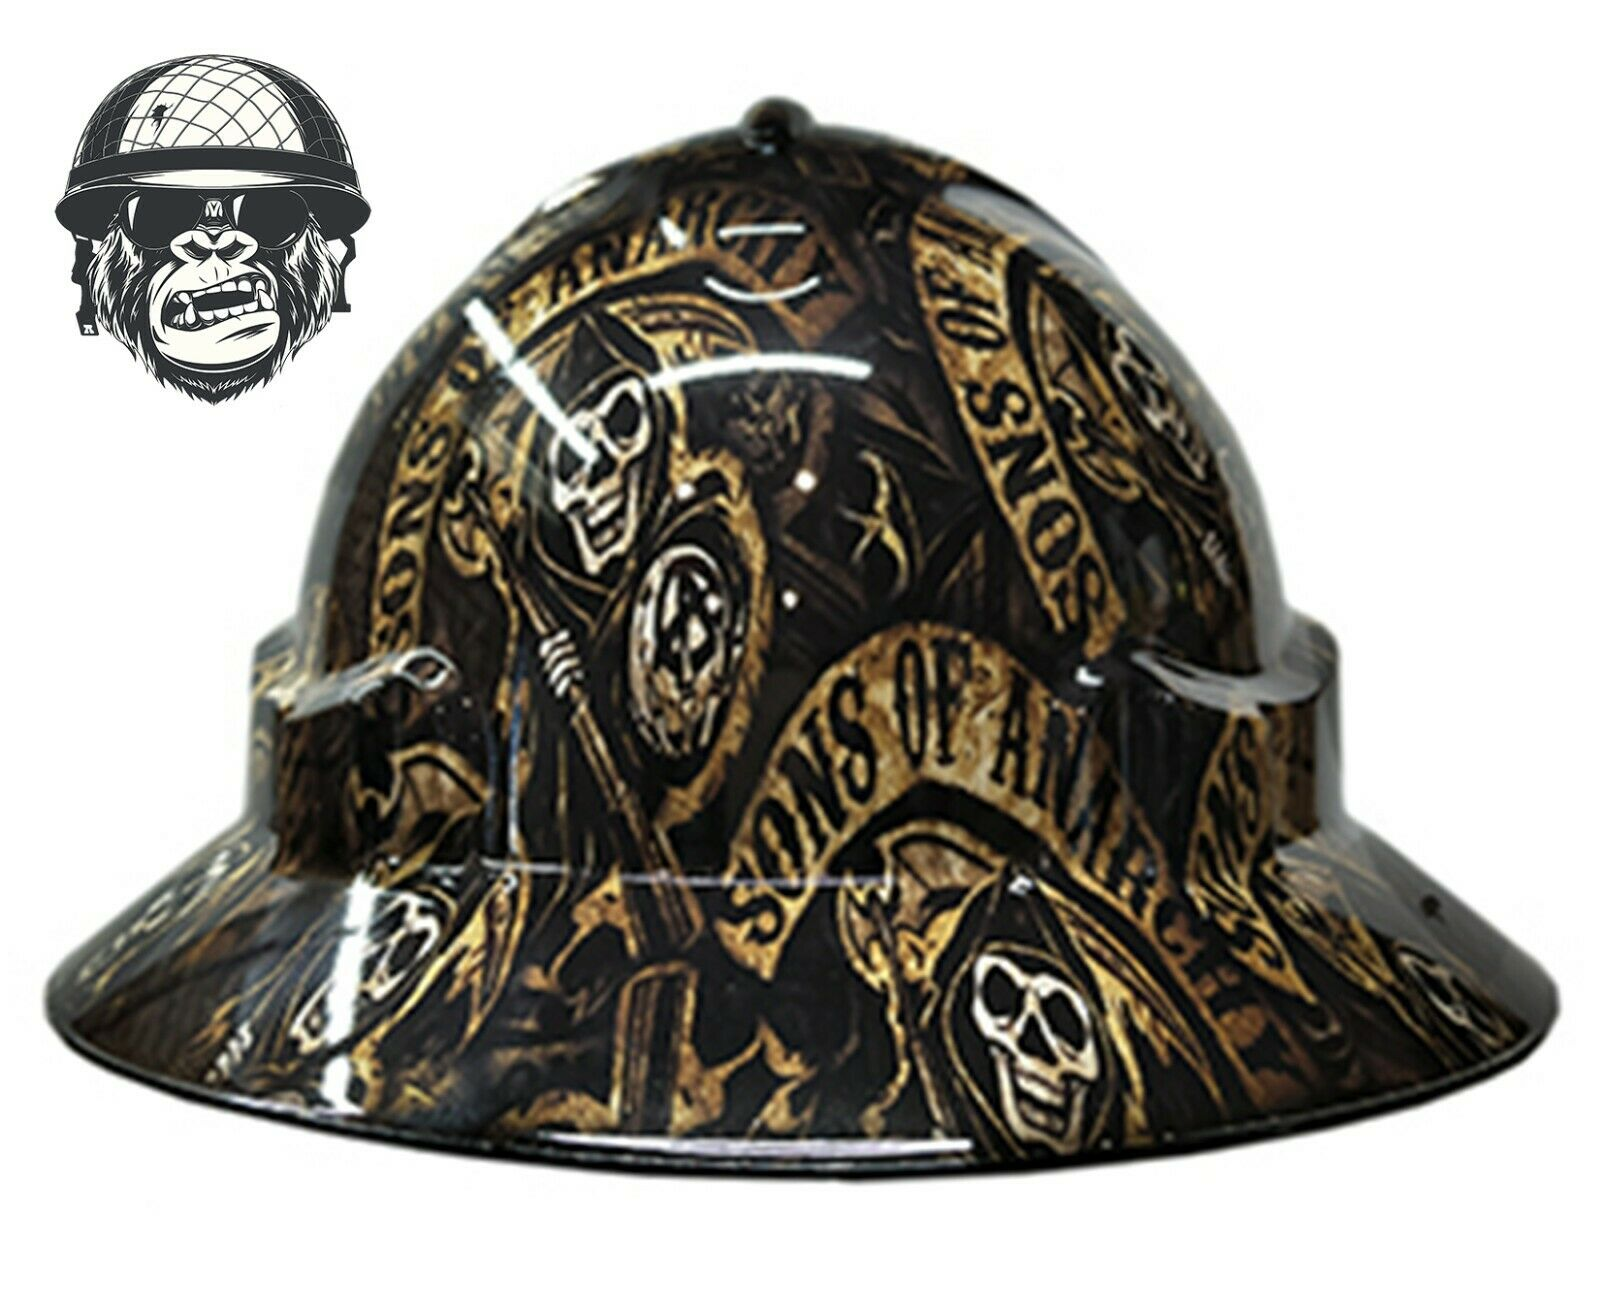 Custom Hydrographic Wide Brim Safety Hard Hat Mining SONS OF ANARCHY WIDE